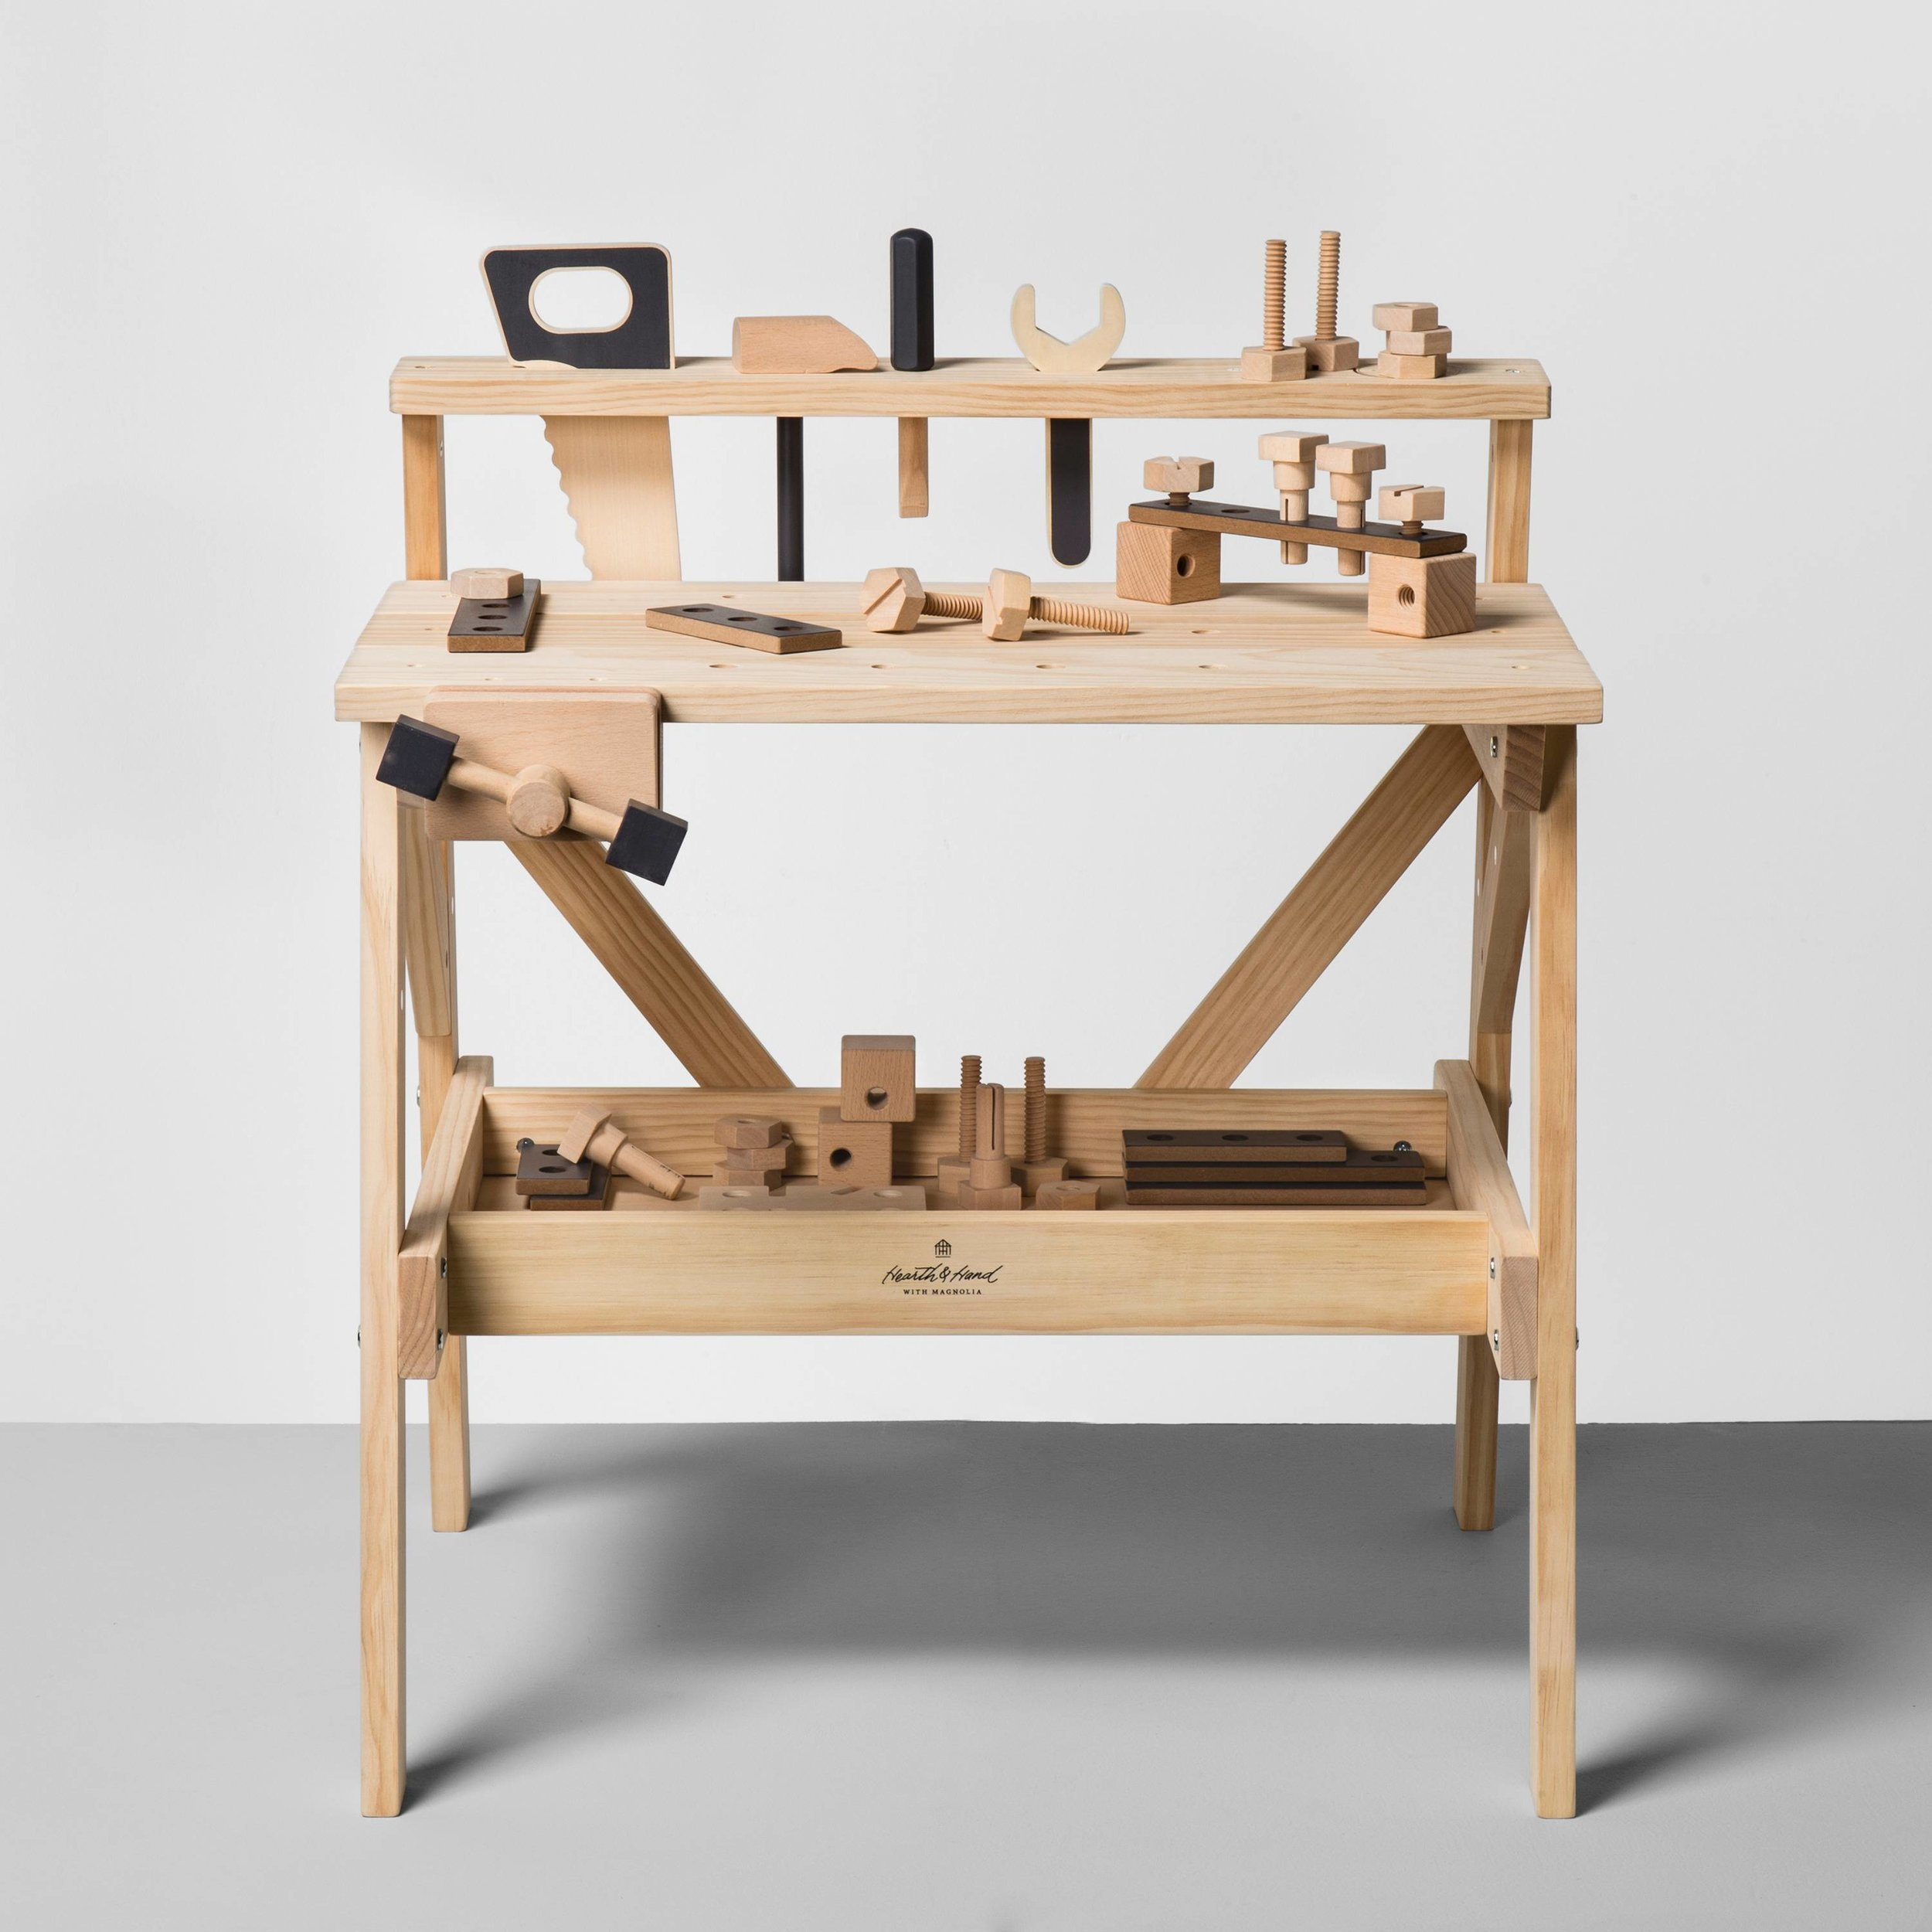 TOOL BENCH... - because they love to help, so why not give them their own workspace